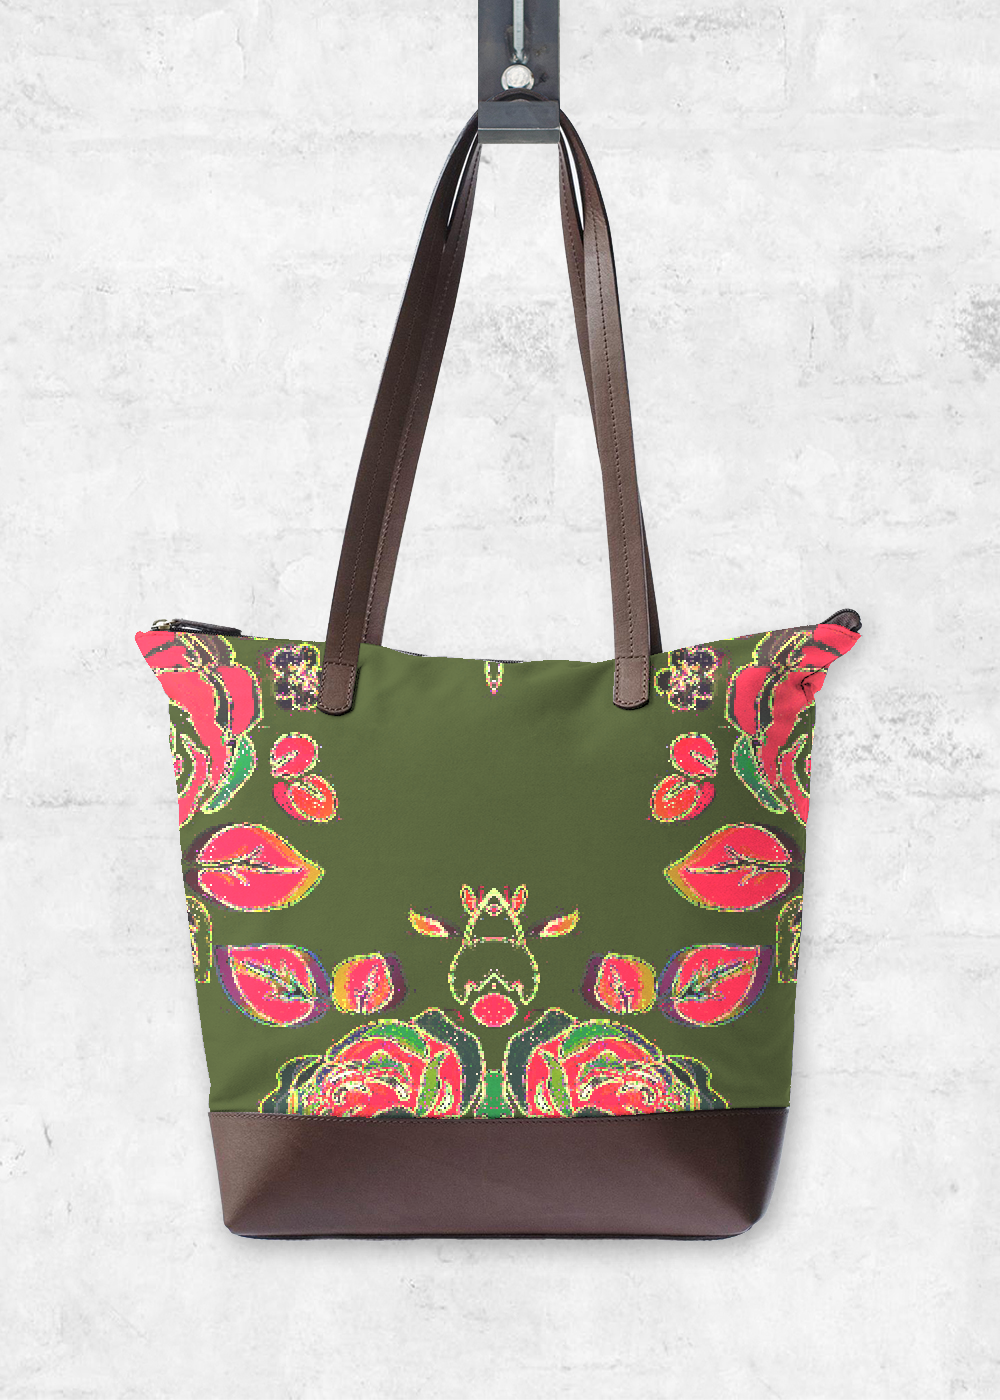 VIDA Statement Bag - Colours of Kaleido 38 by VIDA TwtTGL9zGp